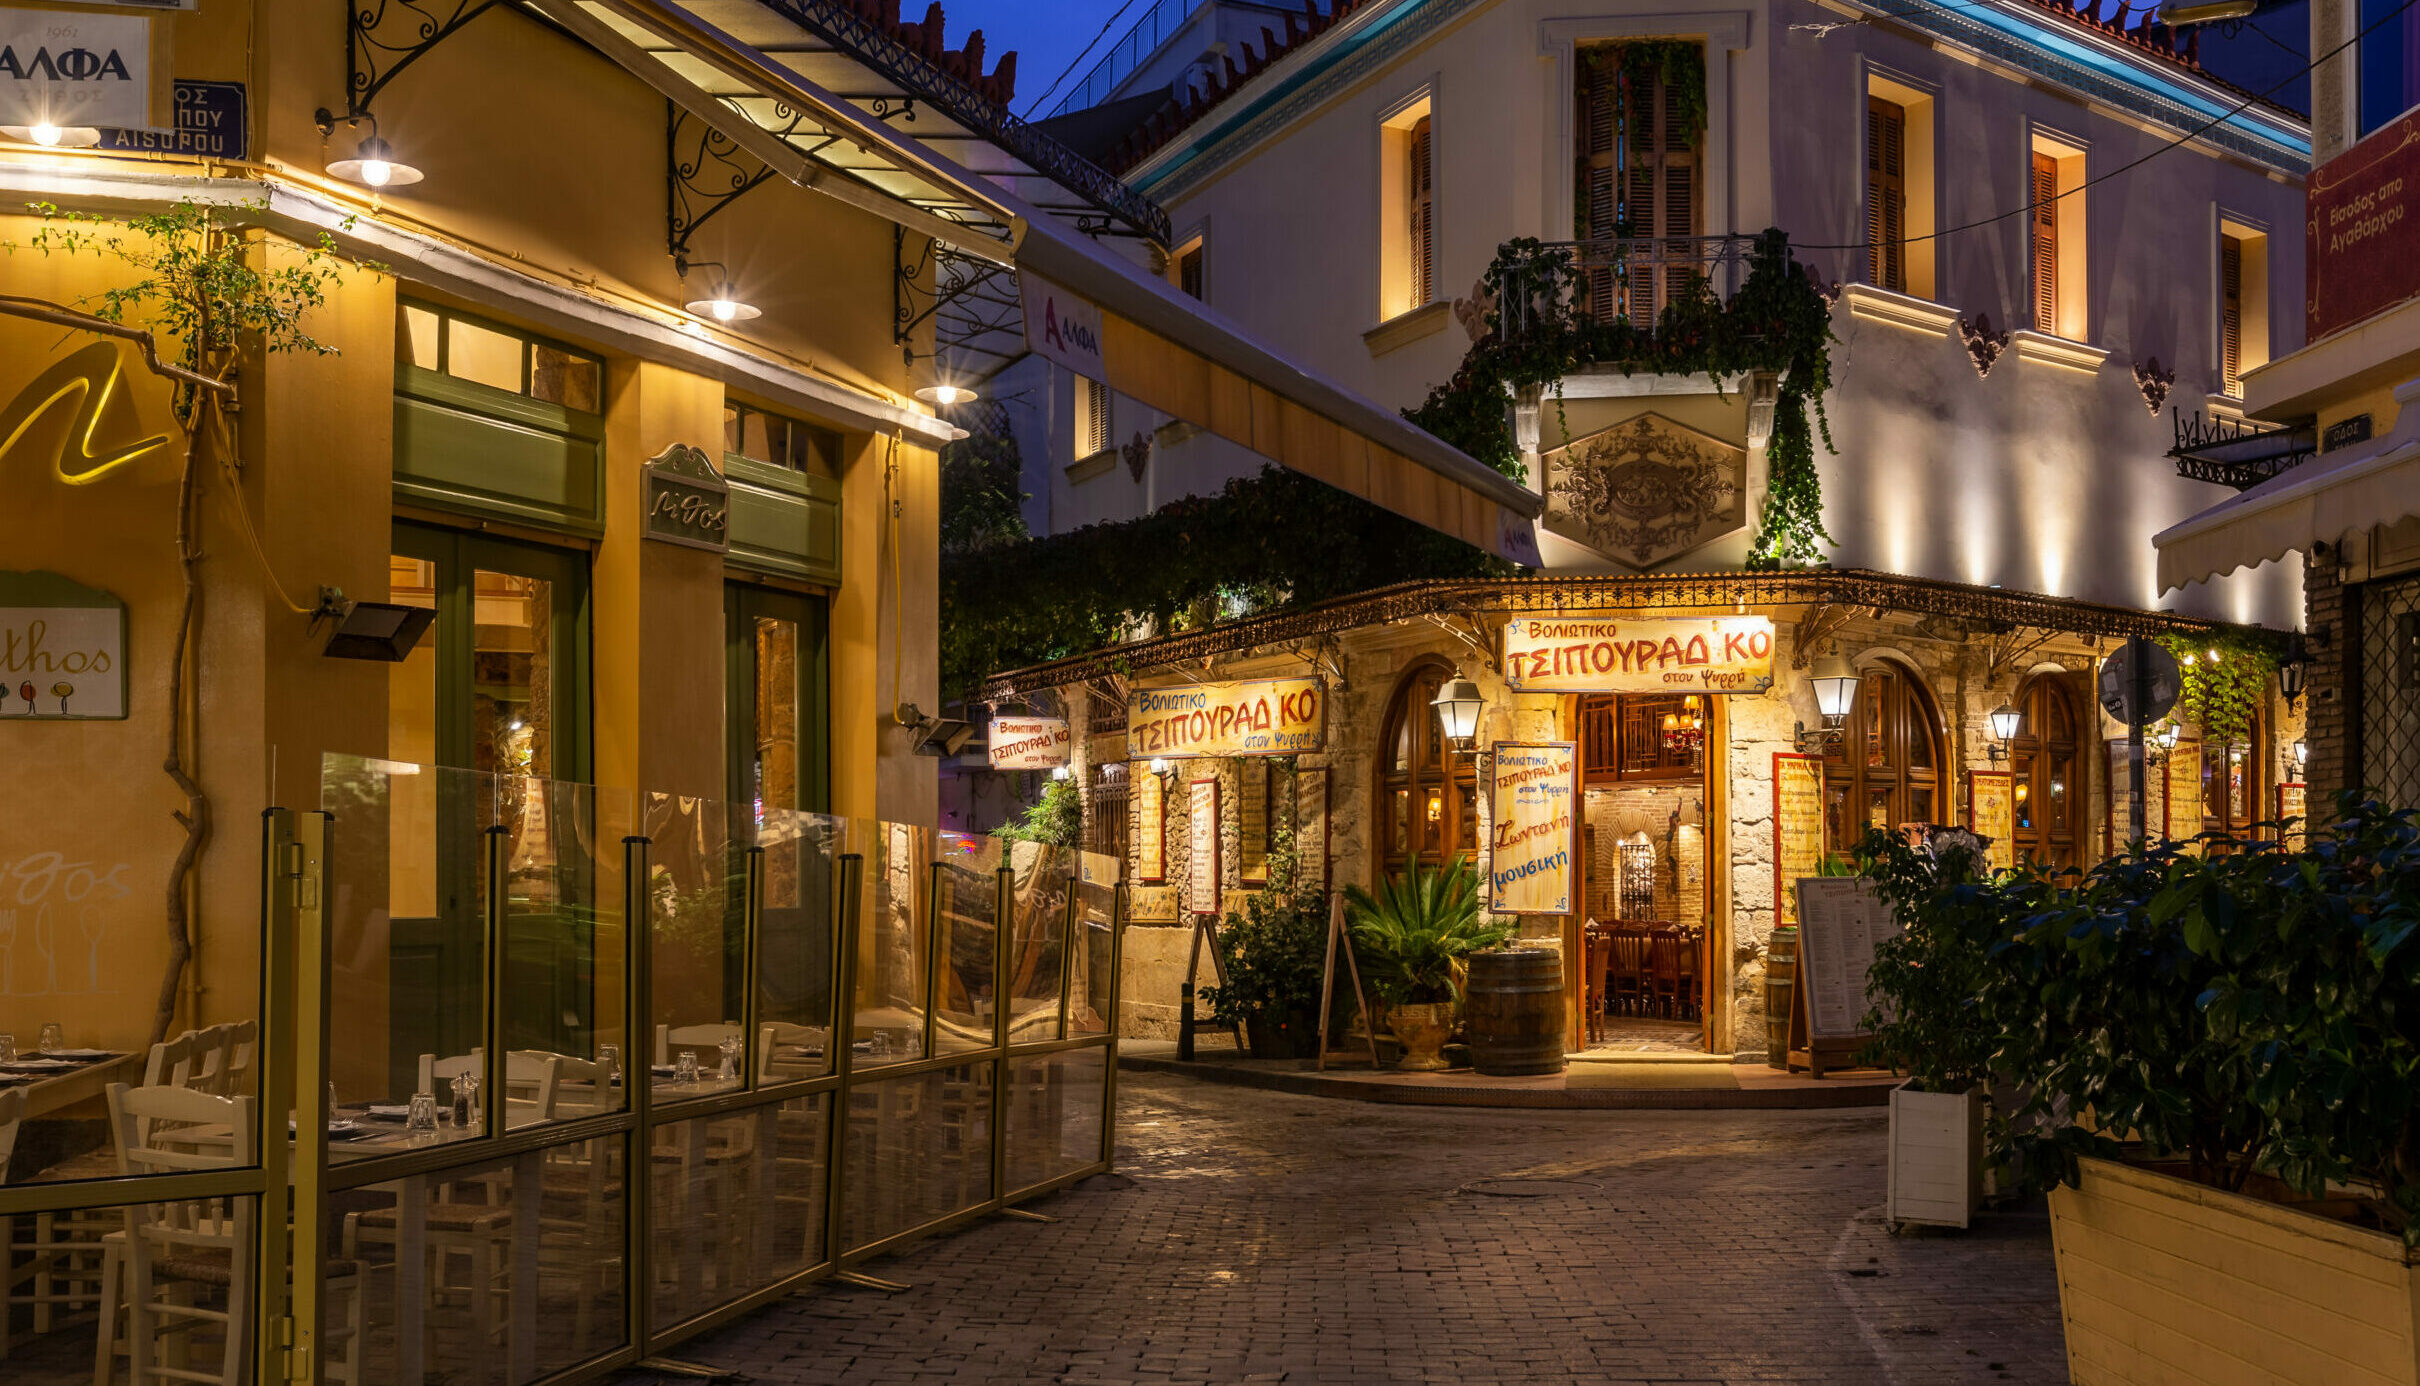 Athens: a stroll to Psyrri, a quaint corner of the city center